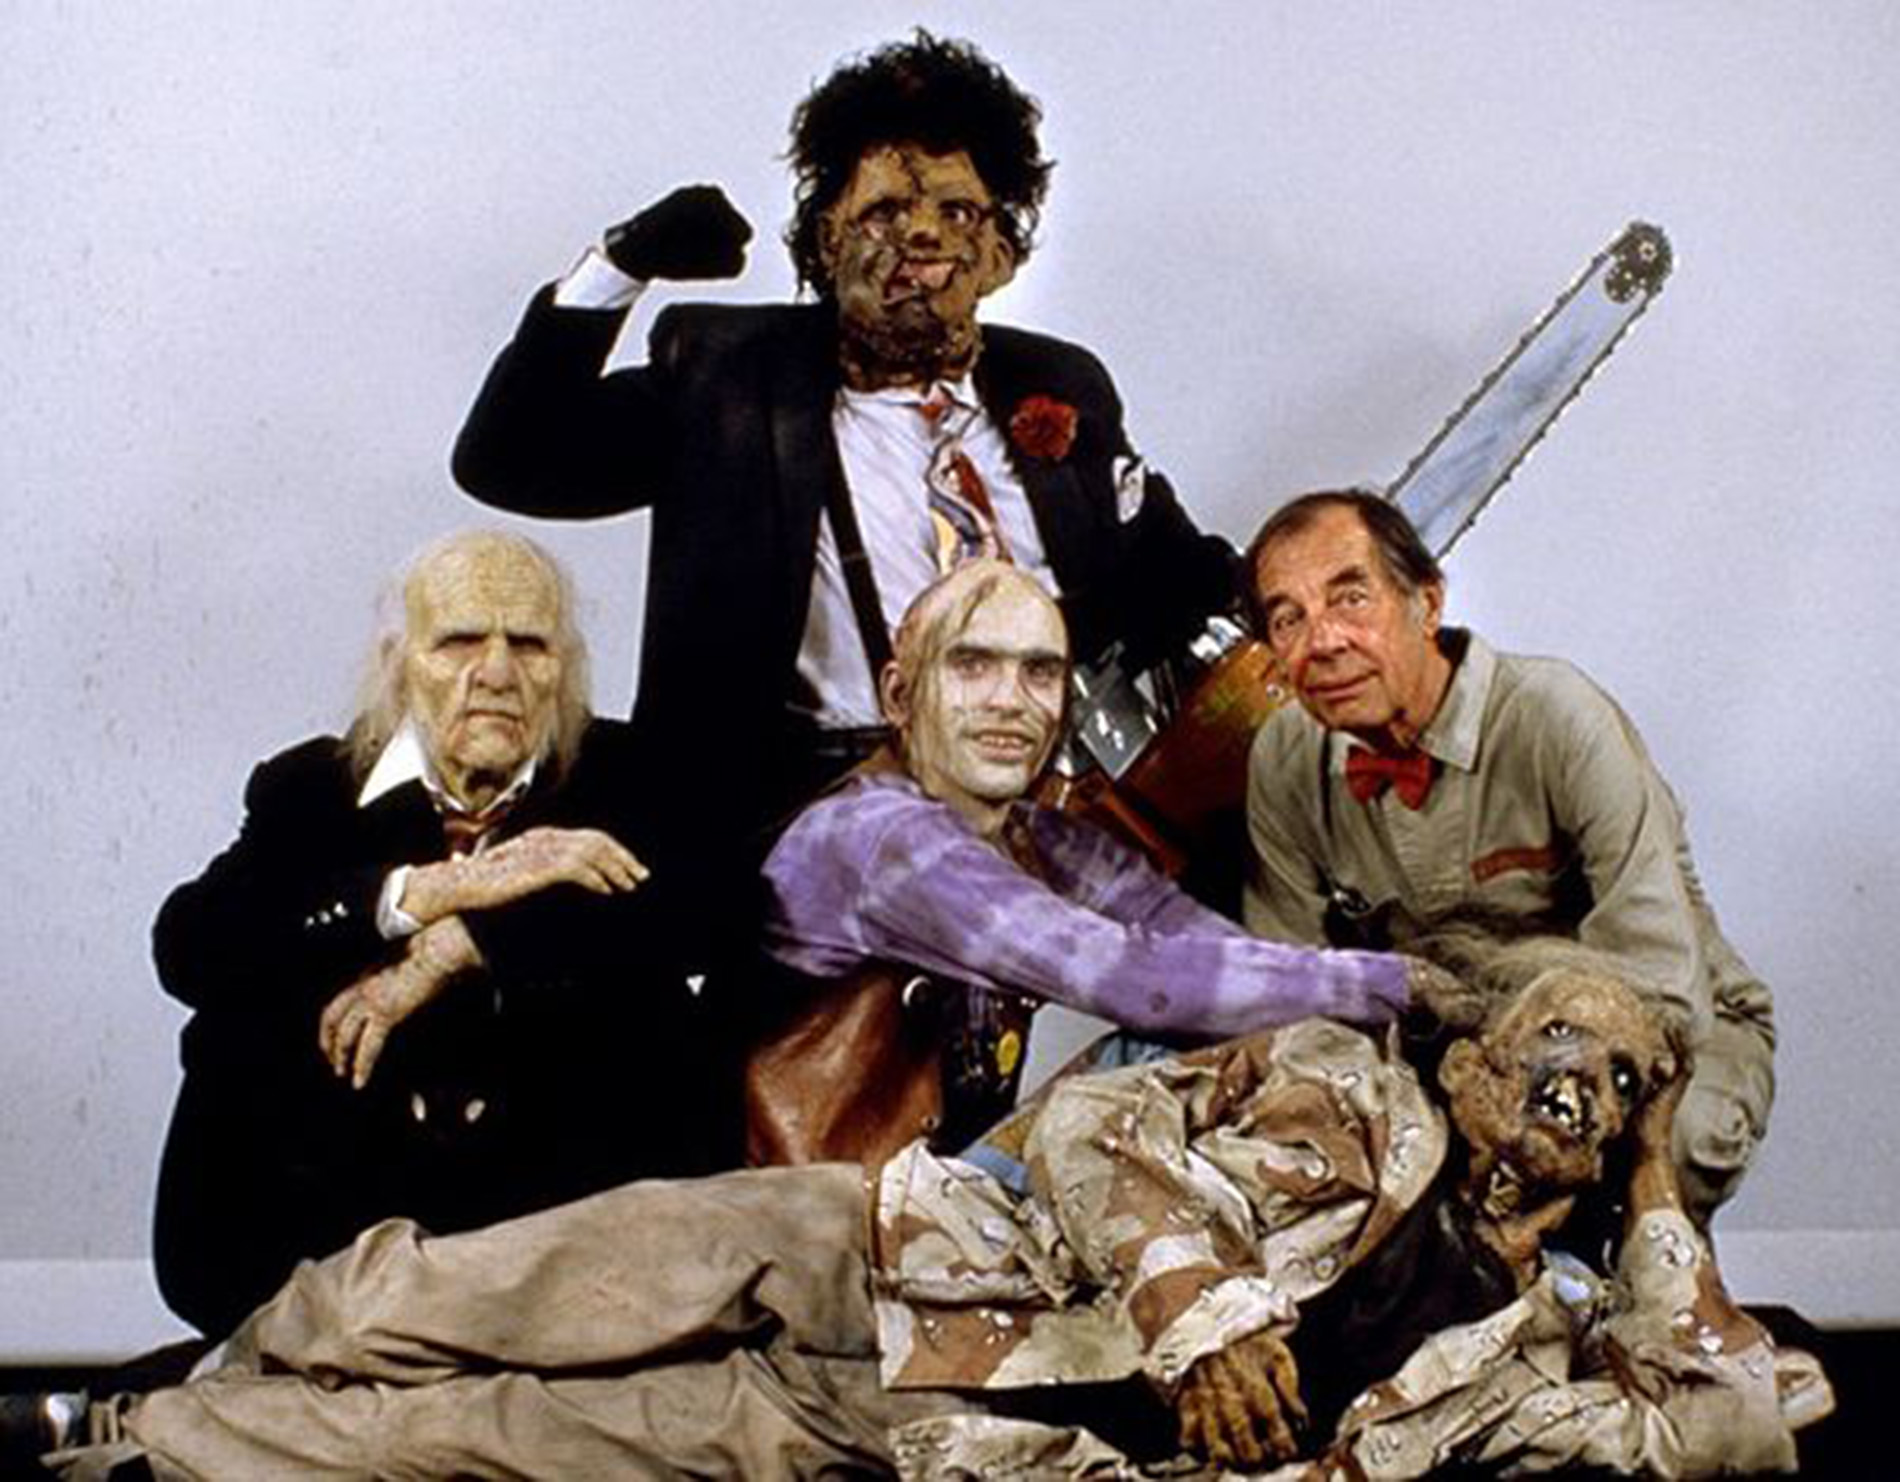 Texas Chainsaw Massacre 2 Chop Top Quotes